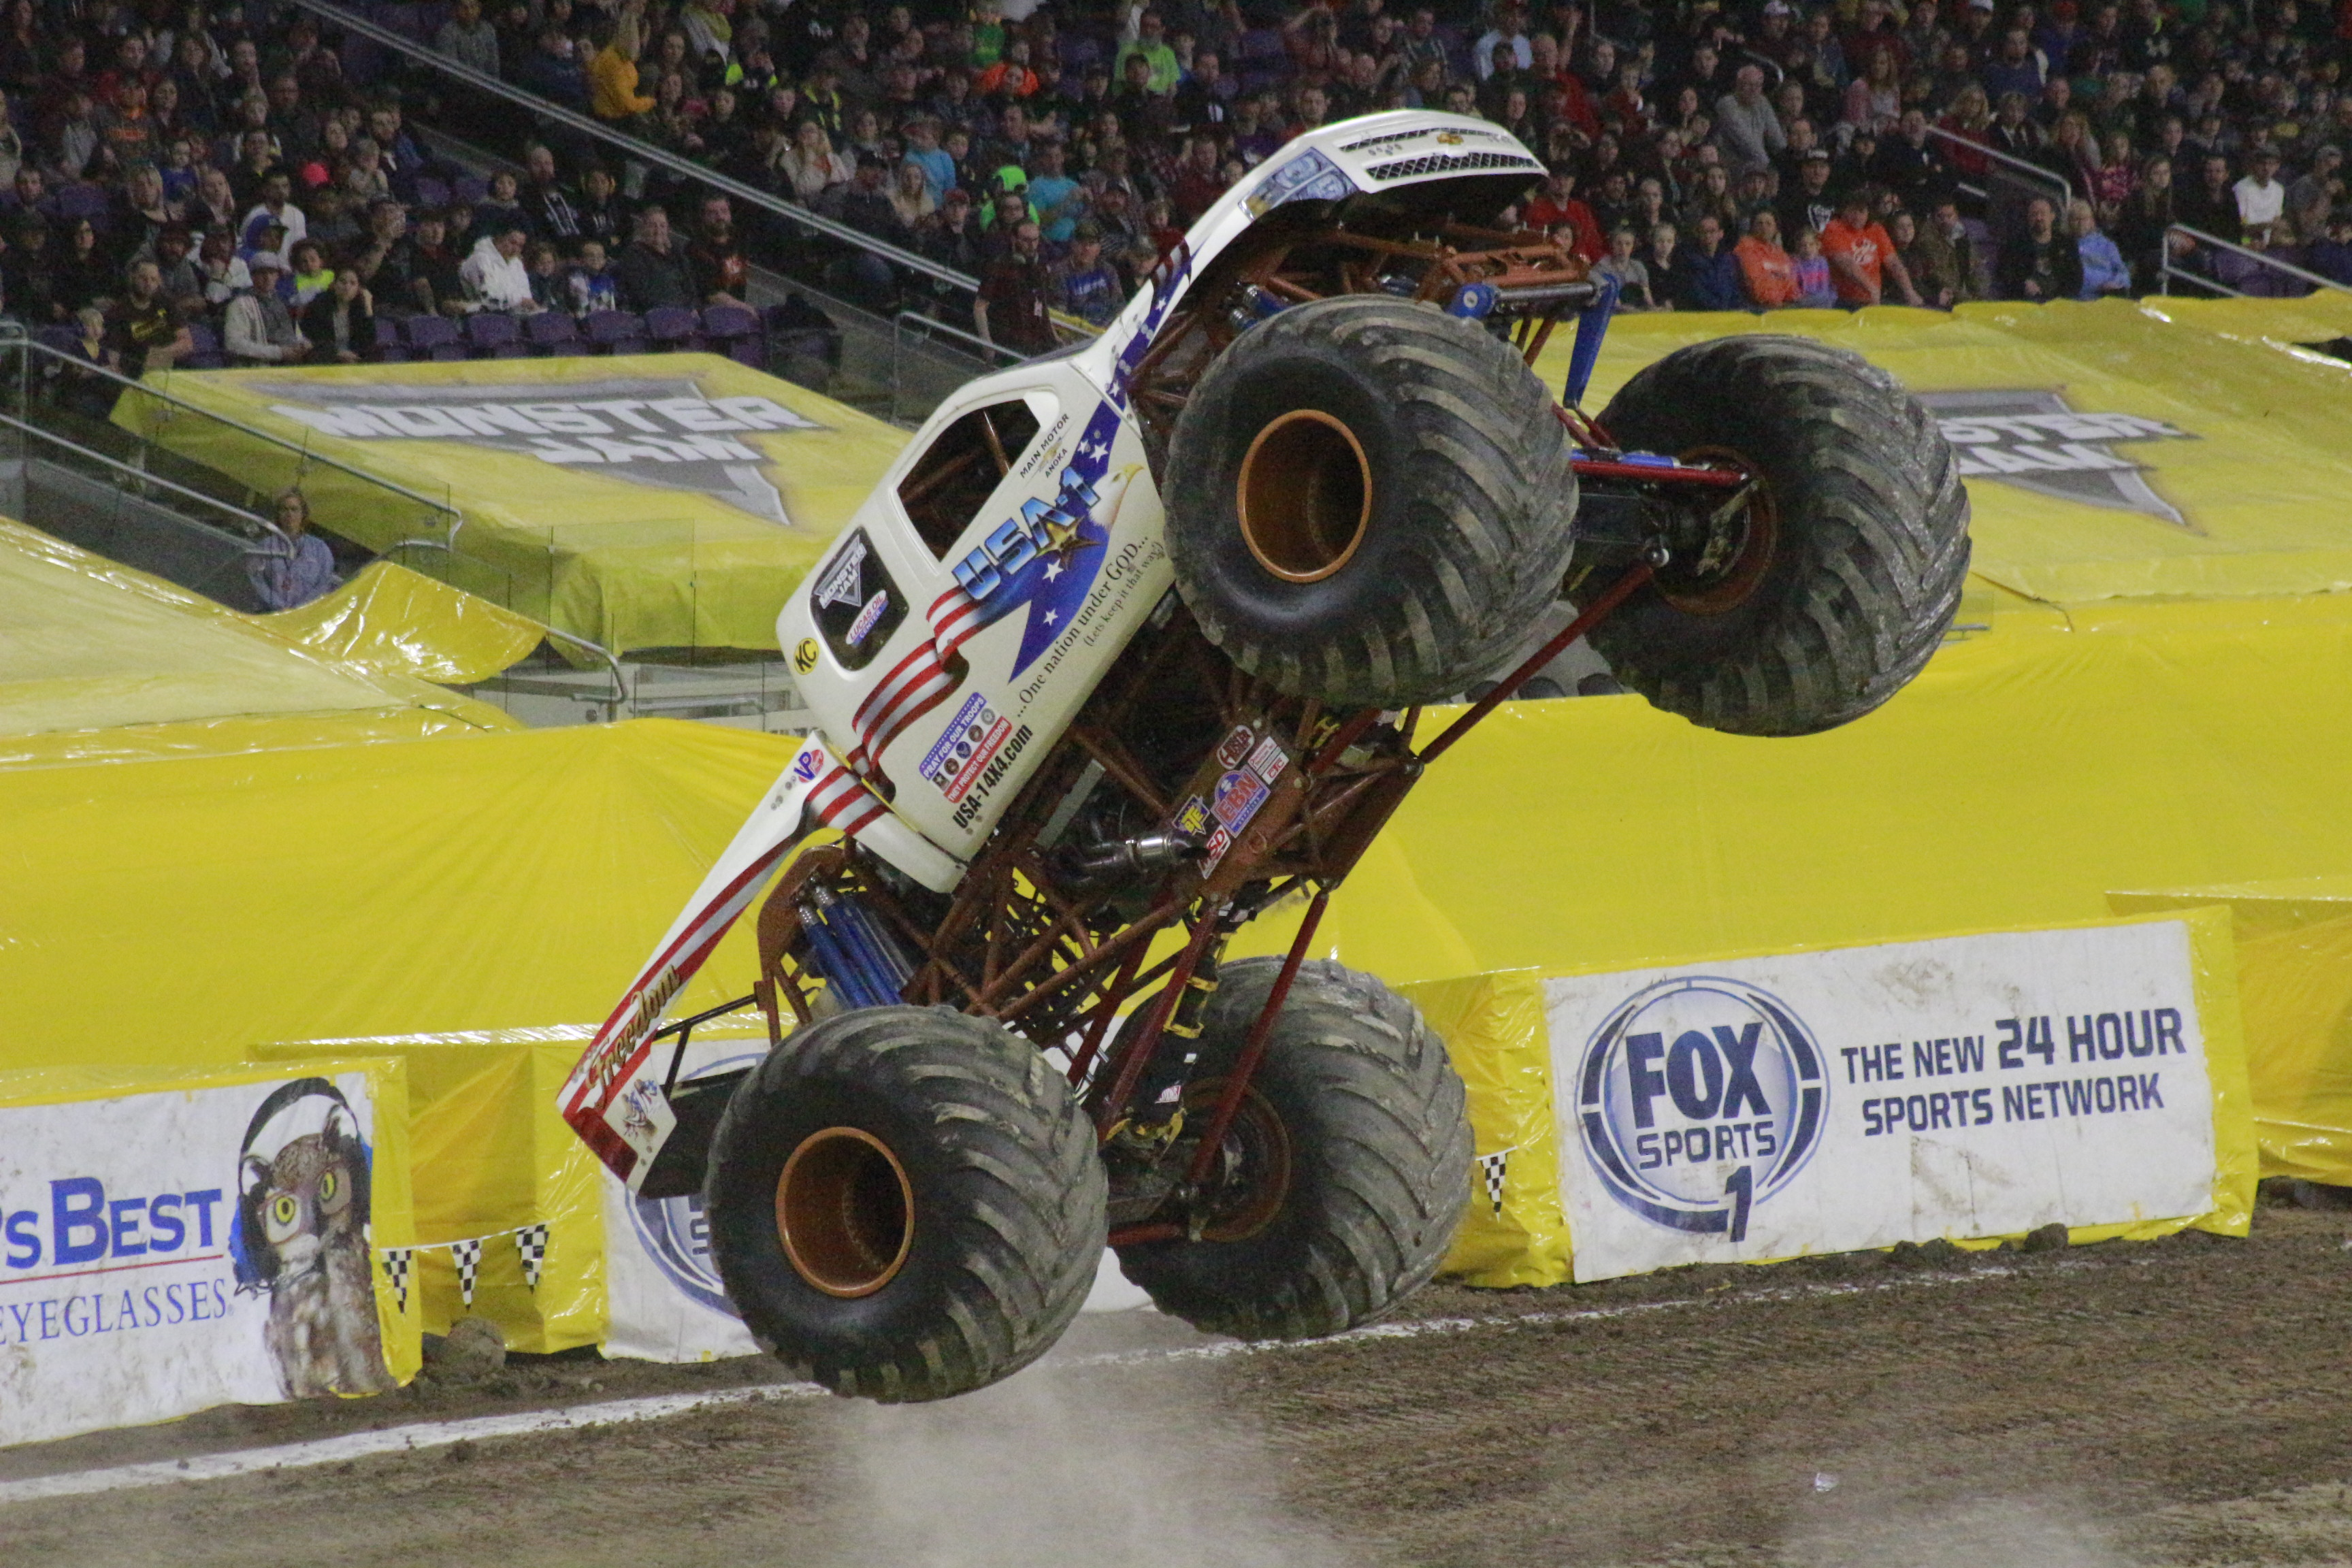 Old and New: USA-1 Back at Monster Jam » USA-1 4x4 Official Site